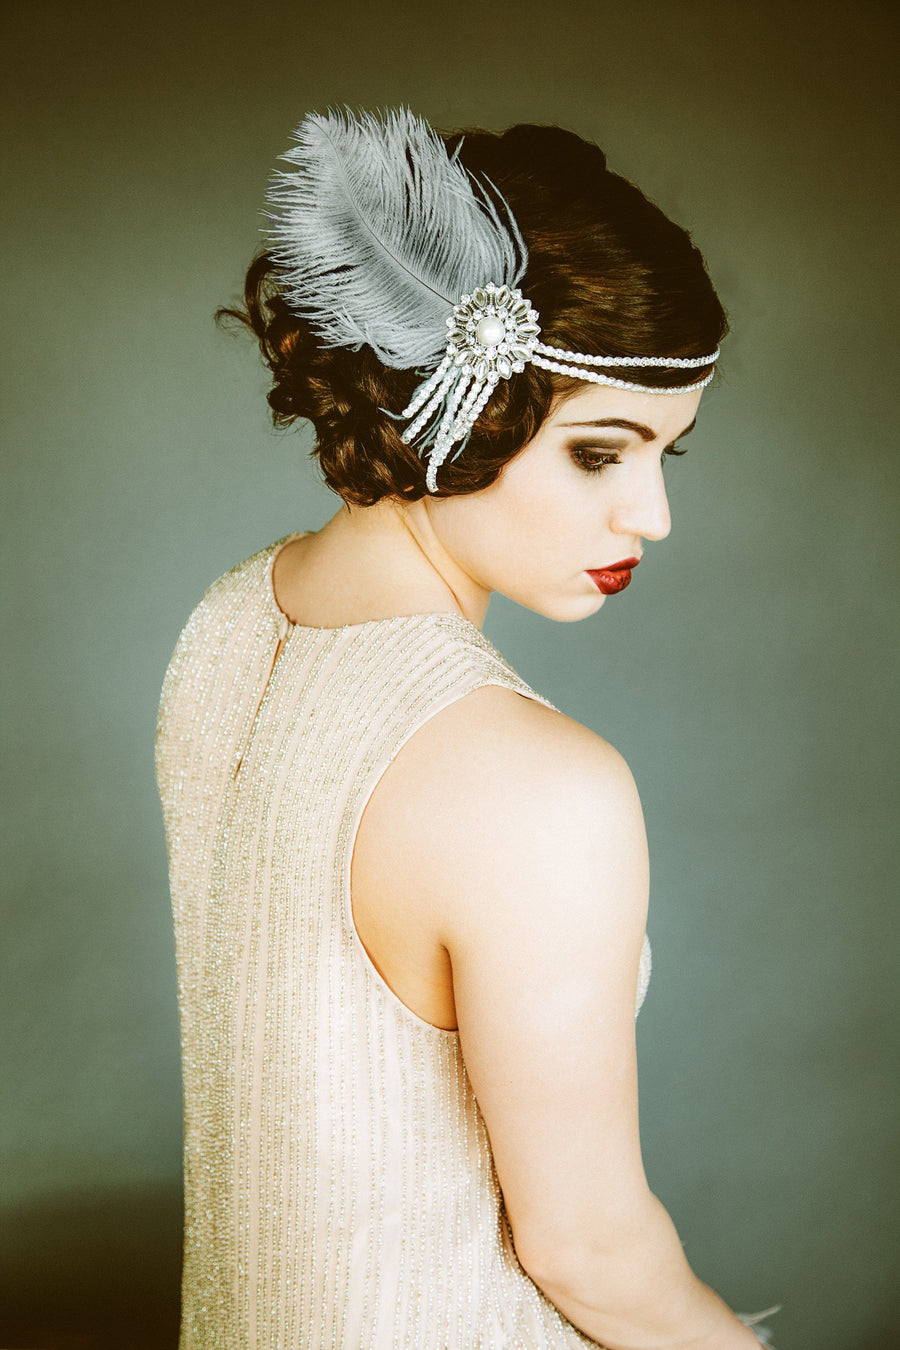 Crystal Flapper Headband in Gray & Silver - Style #103